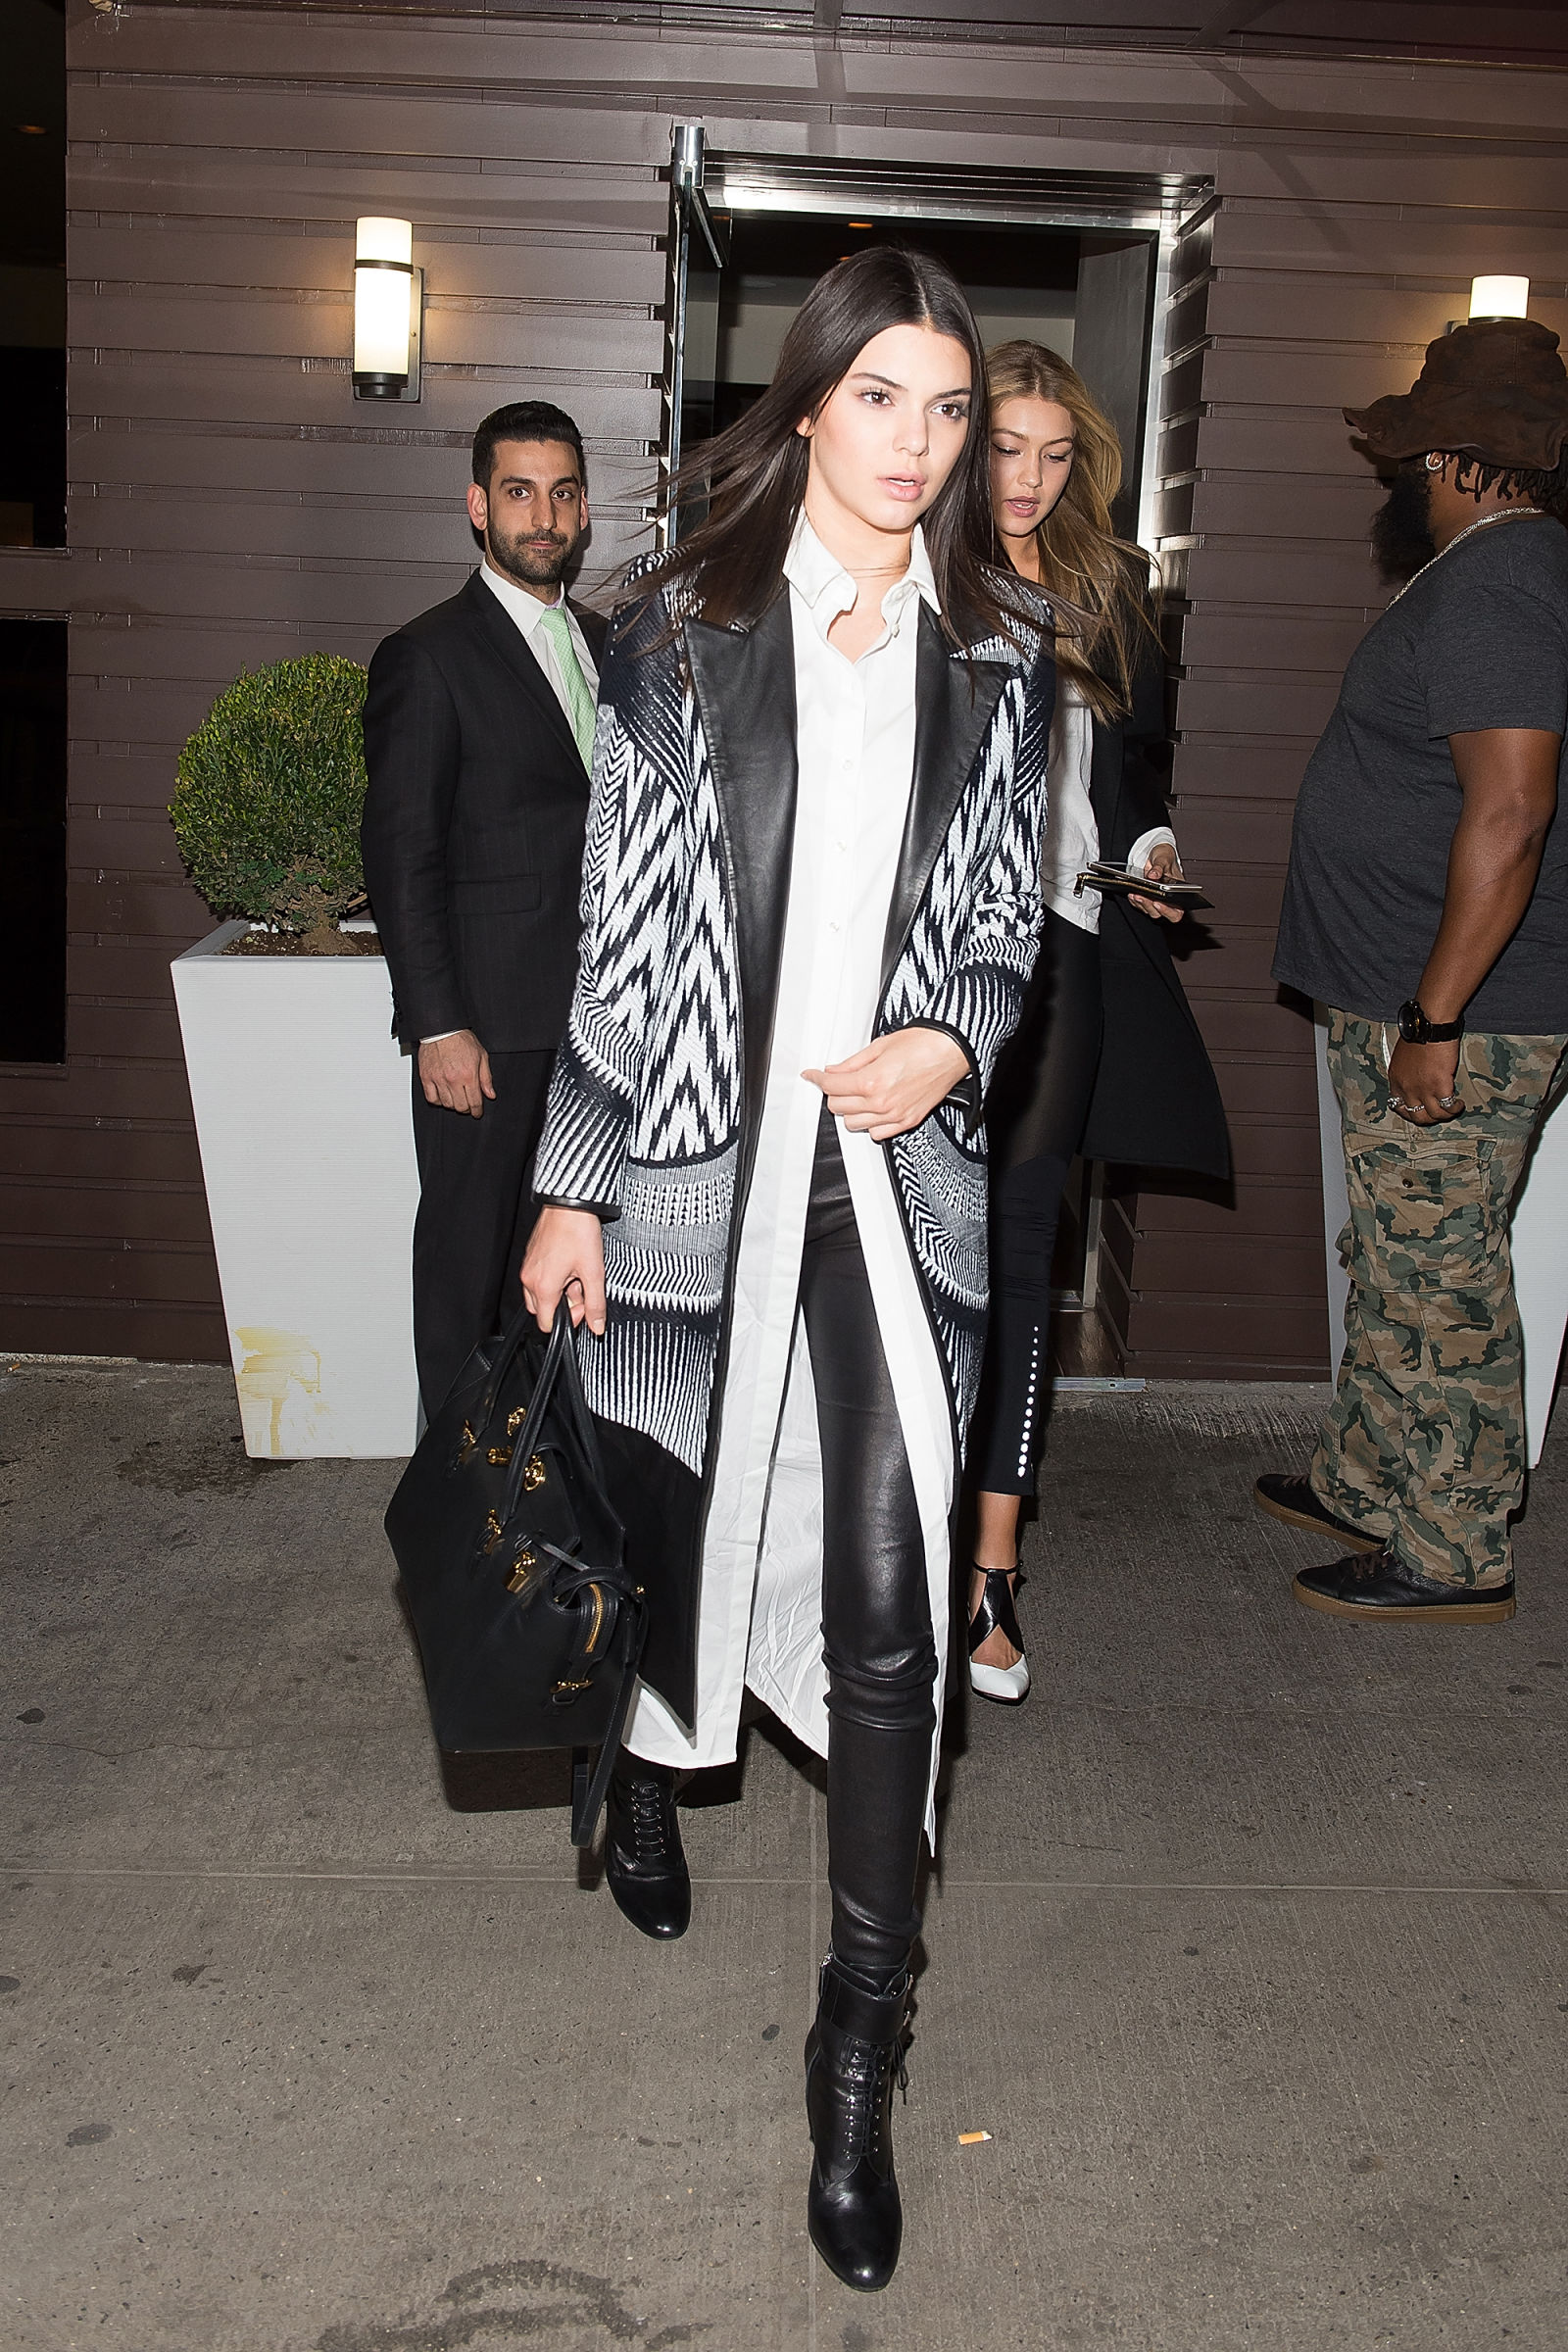 kendall-jenner-in-layered-outfit